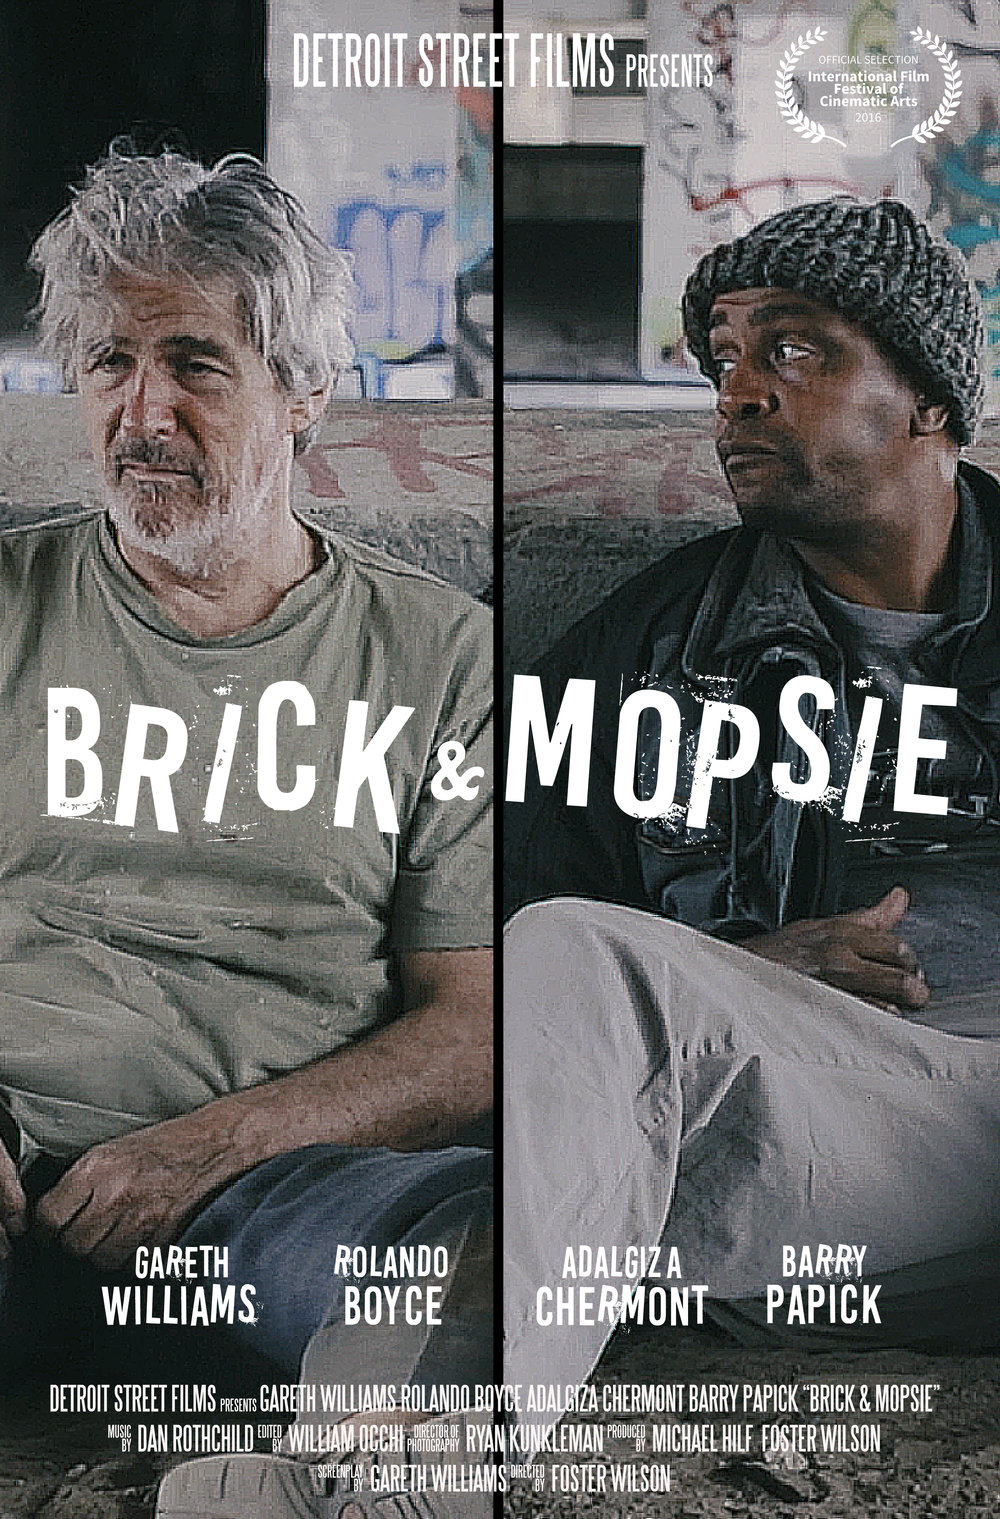 BRICK & MOPSIE - a short filmdirected by Foster Wilsonwritten by Gareth Williamsstarring Rolando Boyce, Gareth Williams, Adalgiza Chermont & Barry Papick---Nestled beneath a highway overpass, Brick and Mopsie attempt to tackle the pressing issues of their time, including manhood, ownership and the fragility of life. In a world where sturdy shoes and stolen grocery carts are prized possessions, these two men ultimately learn what's worth fighting for... and what isn't.---// OFFICIAL SELECTION // International Film Festival of Cinematic Arts 2016Premiered December 6, 2016Los Angeles, California